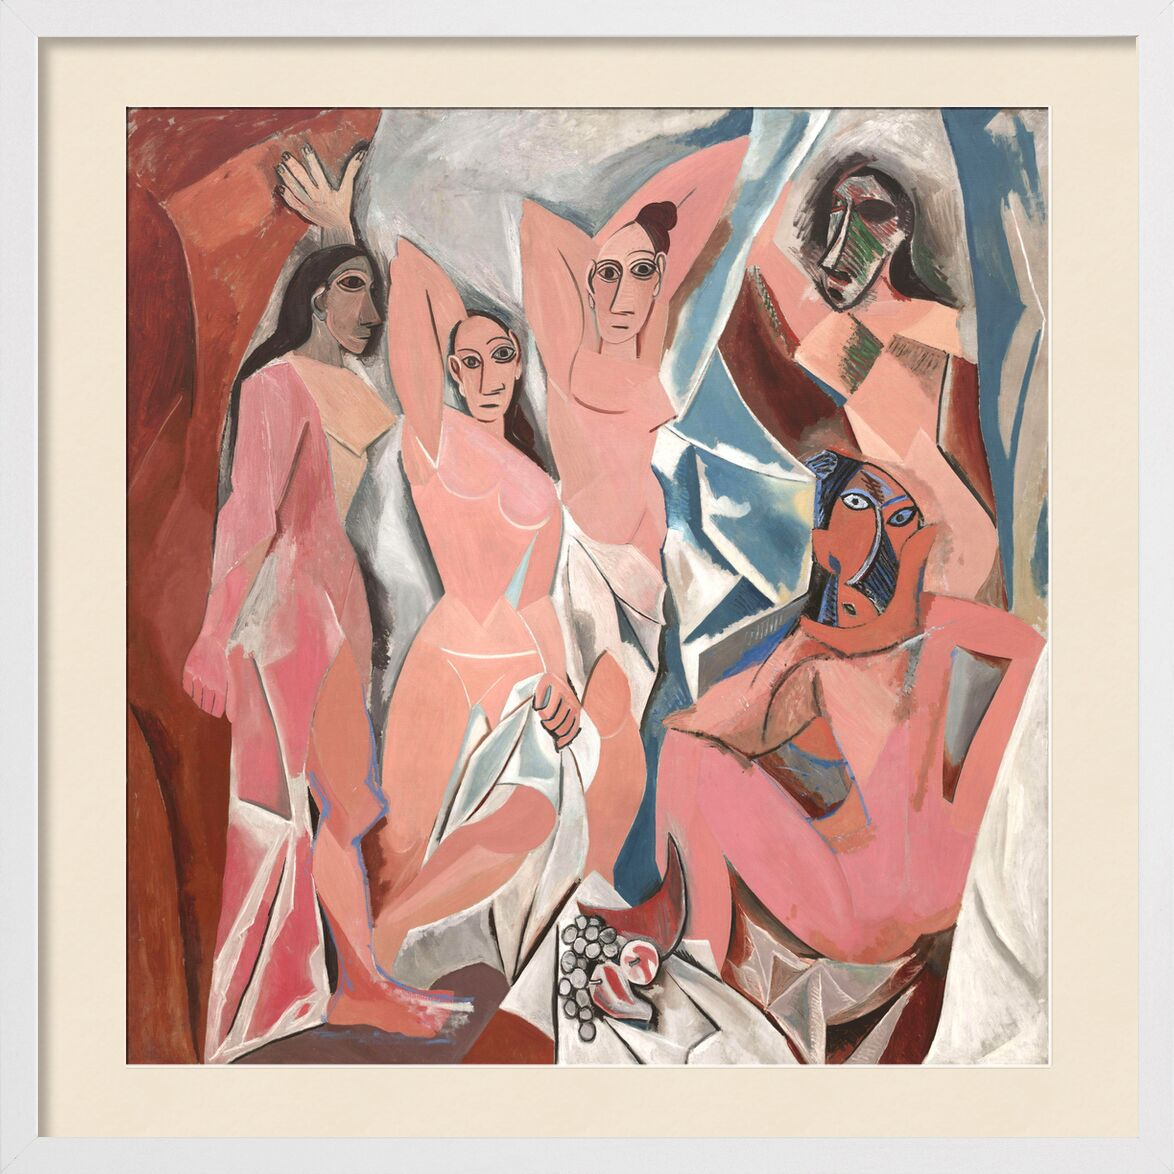 The Ladies of Avignon - PABLO PICASSO from Aux Beaux-Arts, Prodi Art, France, drawing, painting, abstract, PABLO PICASSO, Avignon, women, board